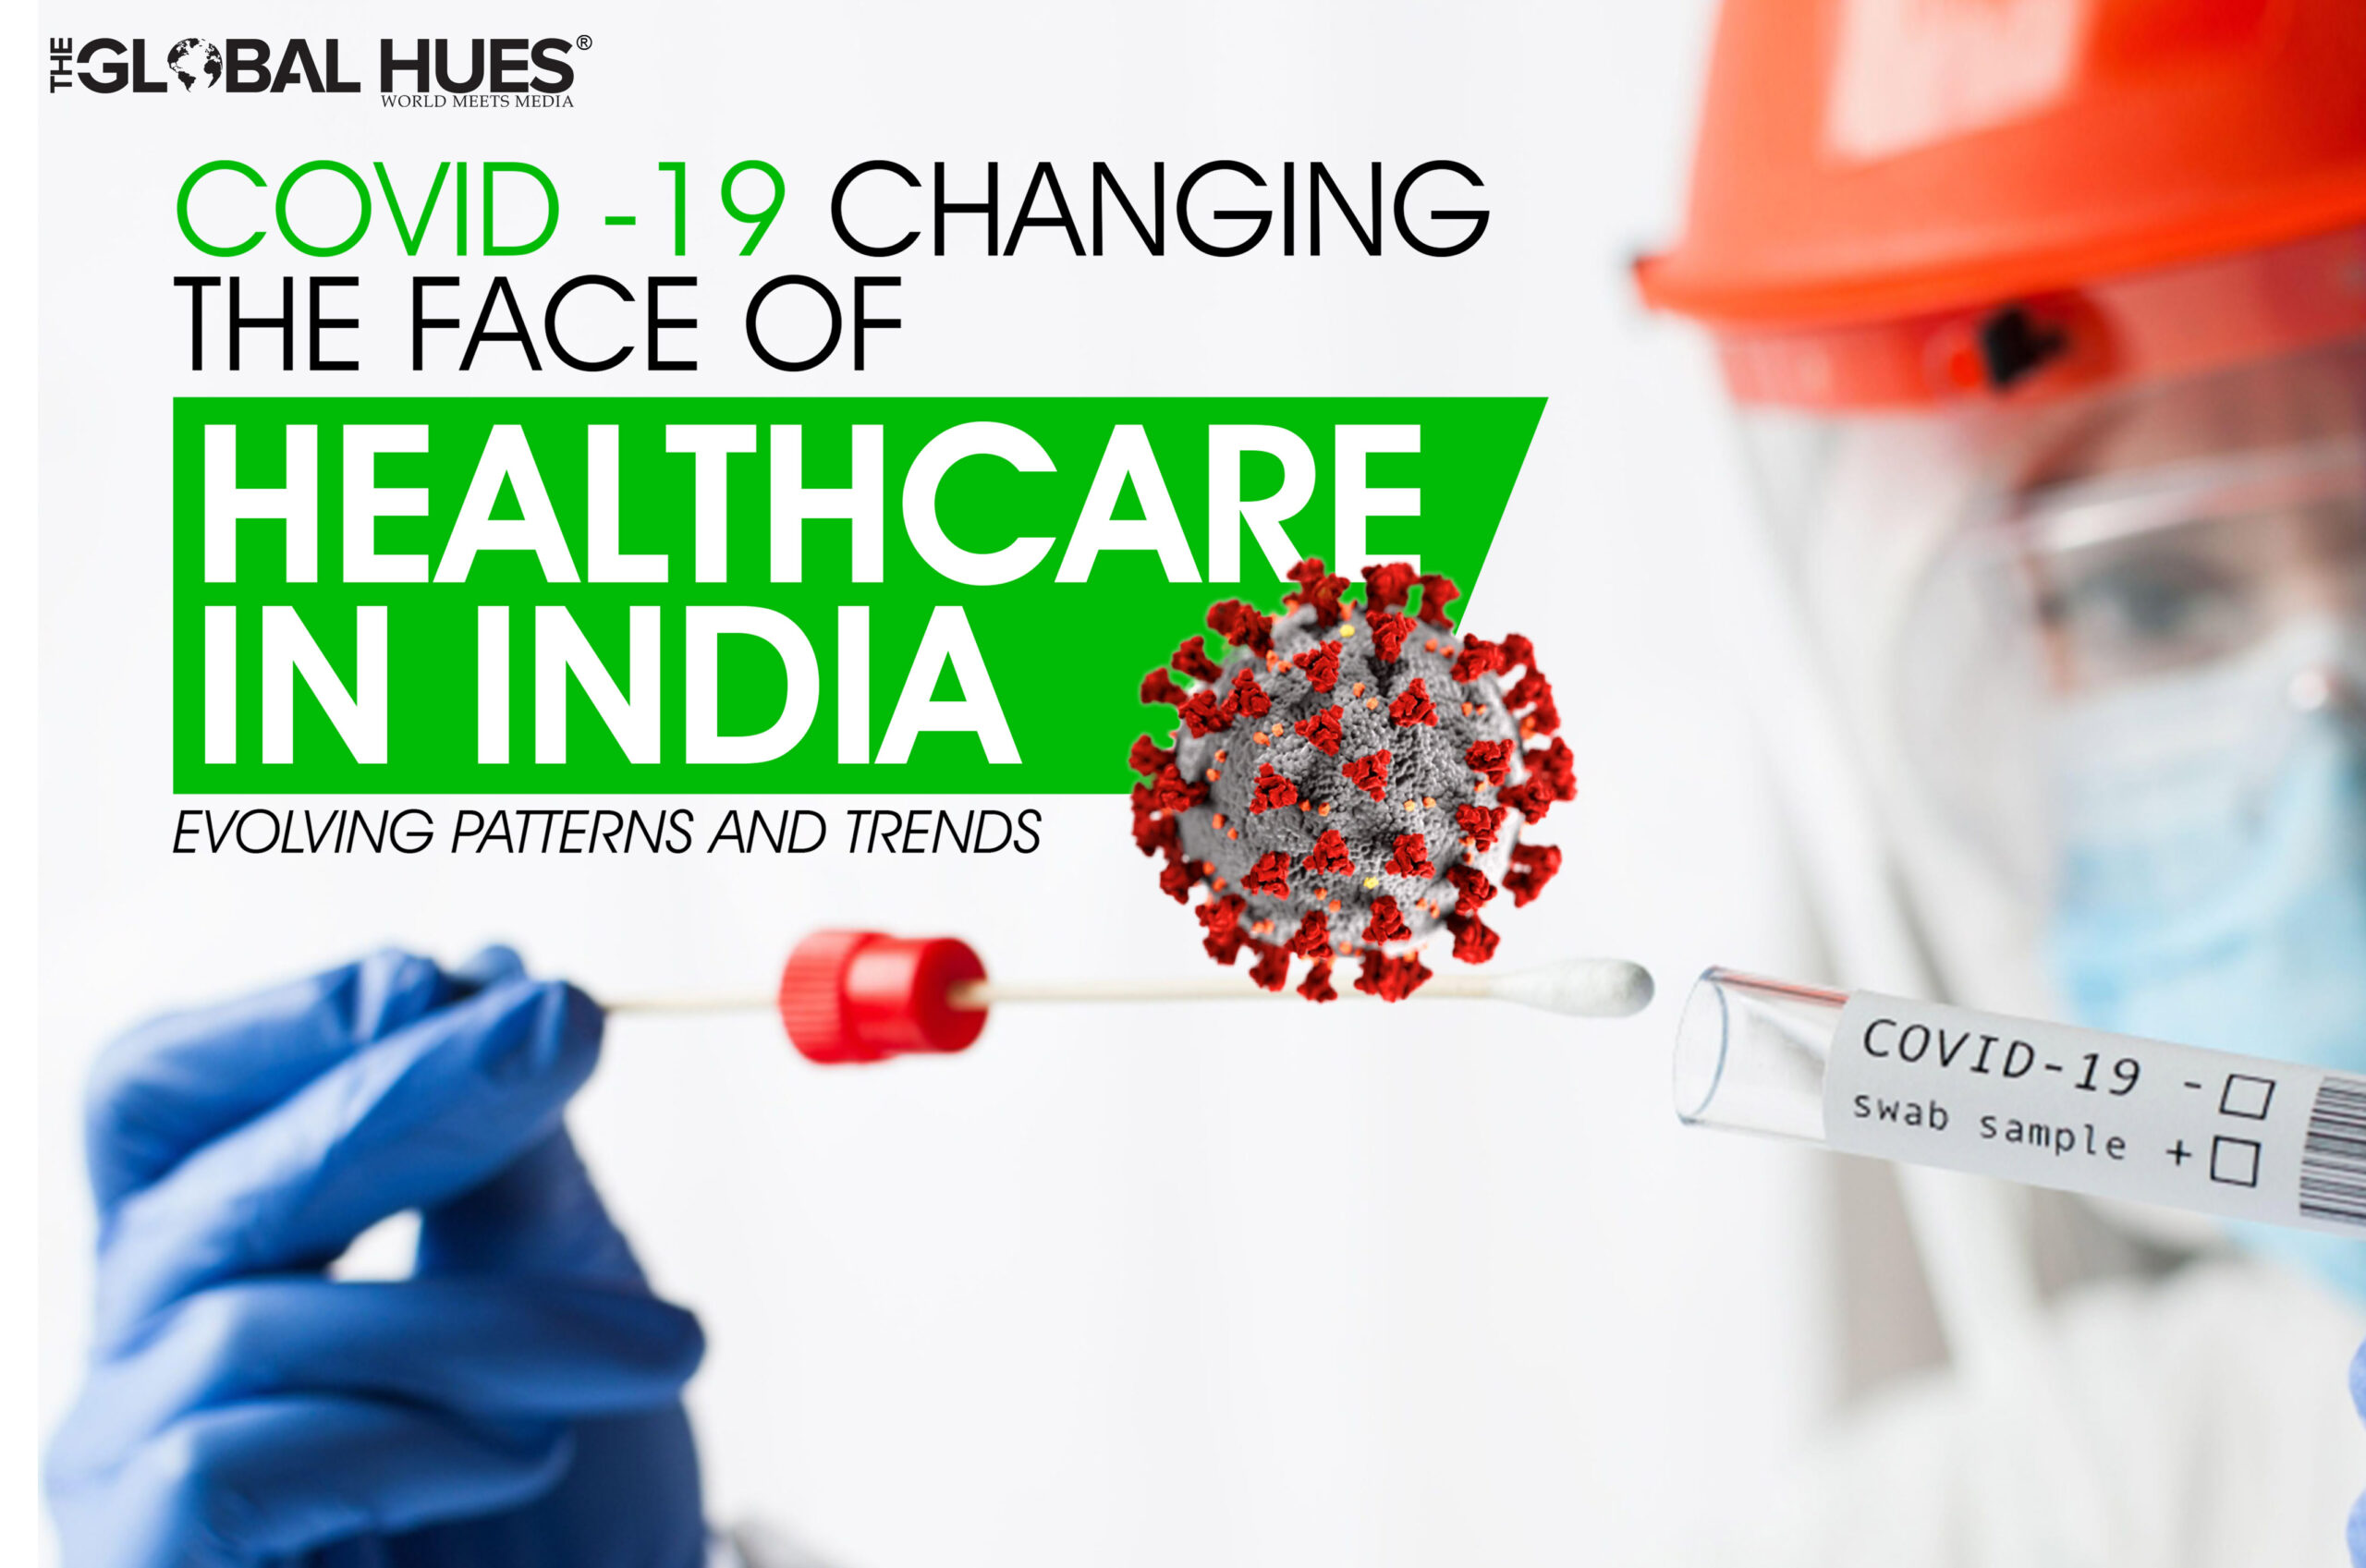 Covid-19-Changing-The-Face-Of-Healthcare-In-India_-Evolving-Patterns-And-Trends-